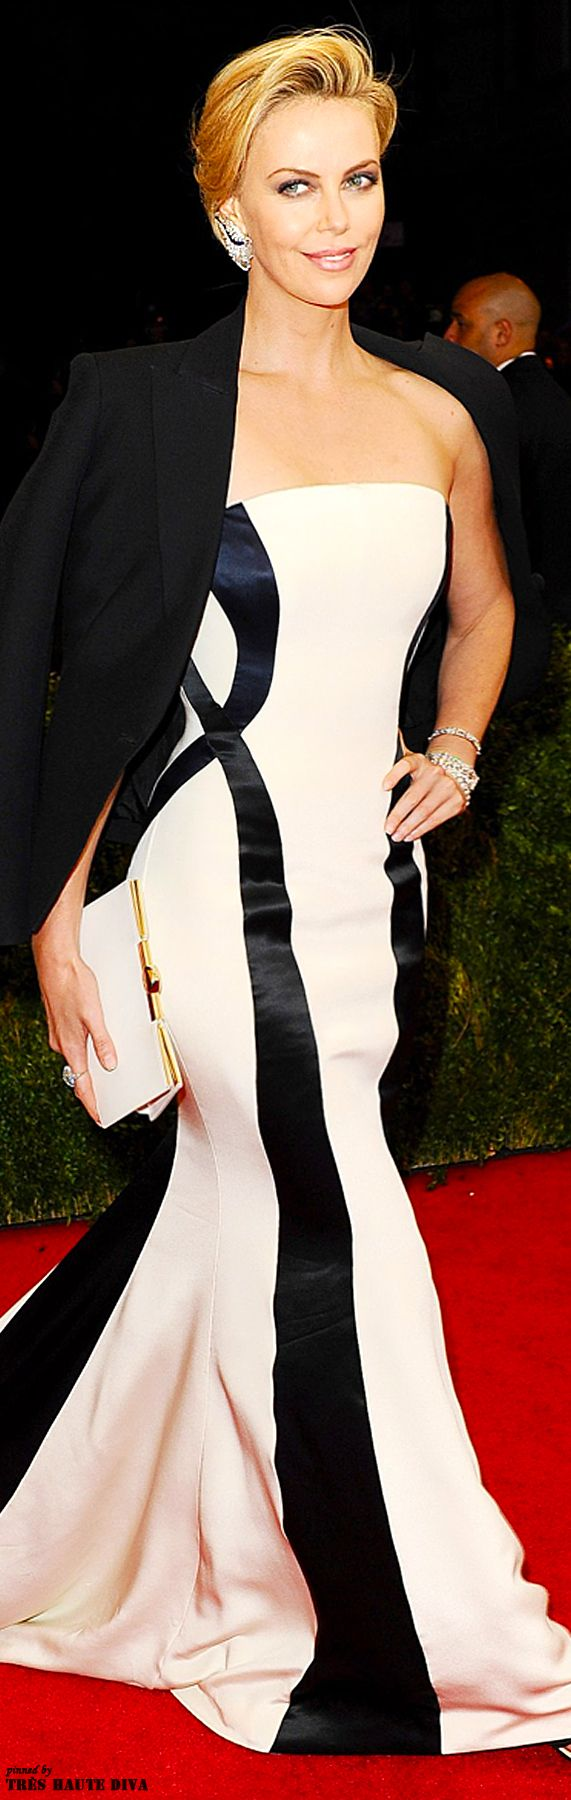 Charlize Theron in Dior Couture gown with tuxedo jacket at the 2014 Met Gala